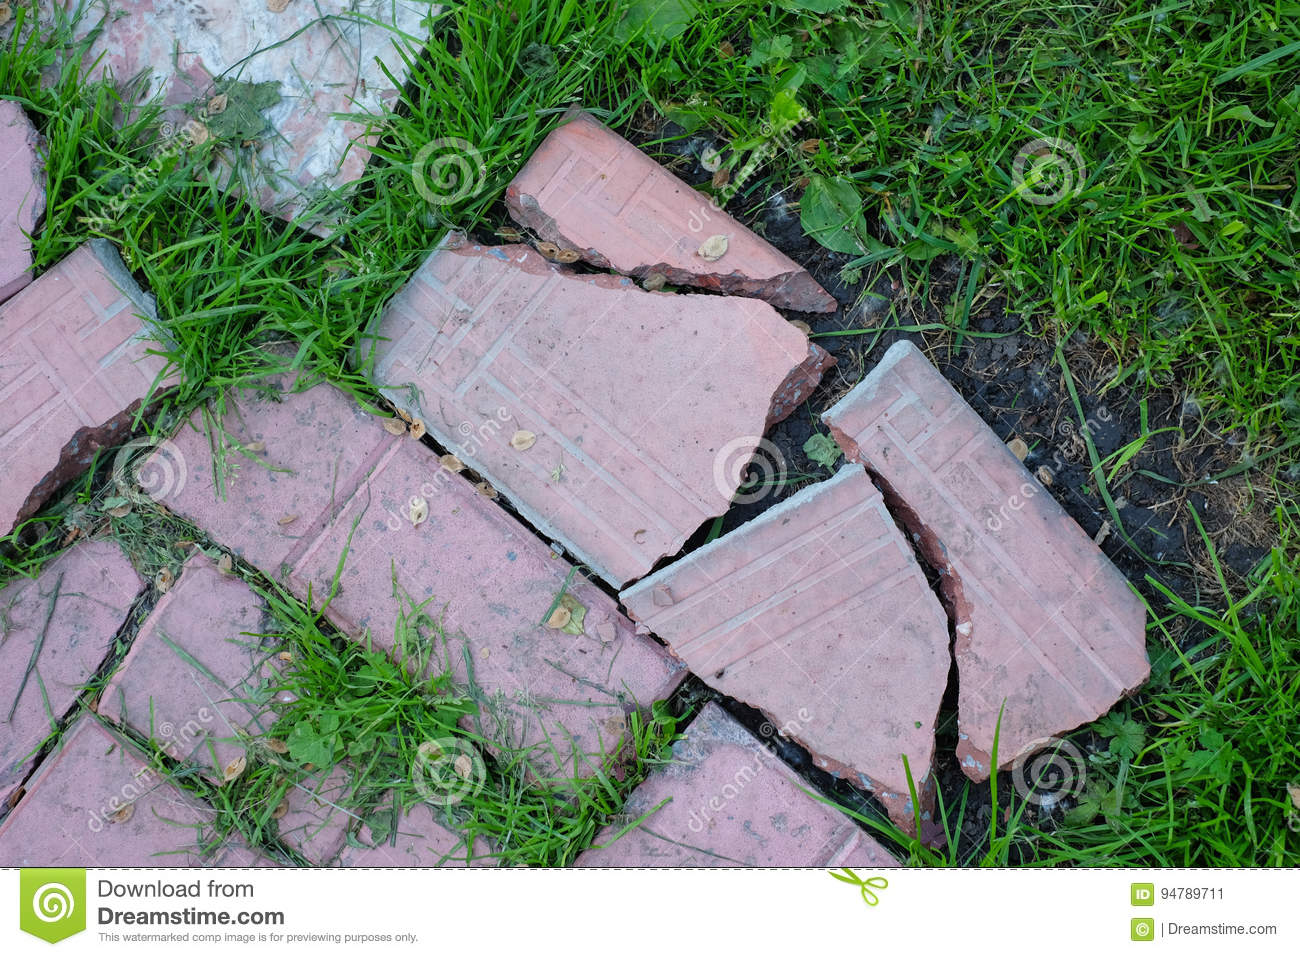 Grass background tile Cartoony Broken Road Of Pink Tile Overgrown With Green Grass Background Texturescom Broken Road Of Pink Tile Overgrown With Green Grass Background Top